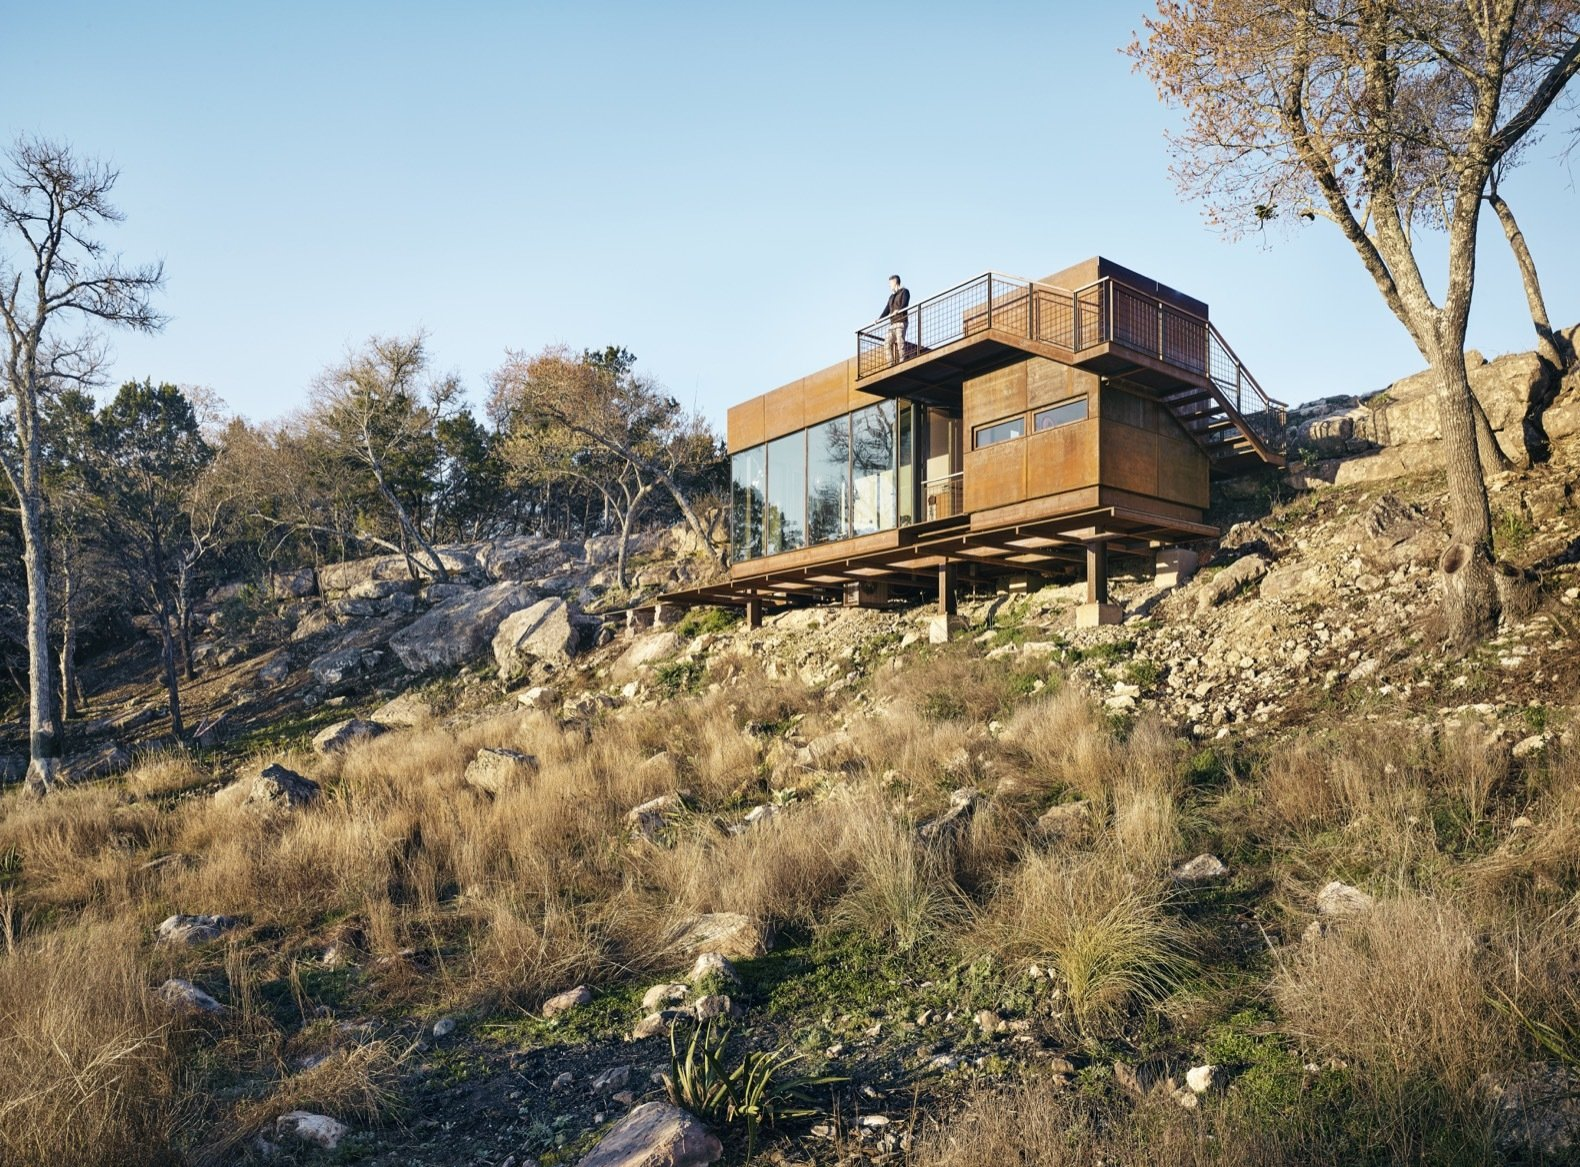 Exterior, Metal, Metal, Cabin, Flat, and Small Home Lemmo Architecture and Design received a 2017 AIA Austin award for the Clear Rock Lookout, one of their first commissions.   Best Exterior Cabin Small Home Photos from An Award-Winning Writing Studio Hides Quietly in Texas